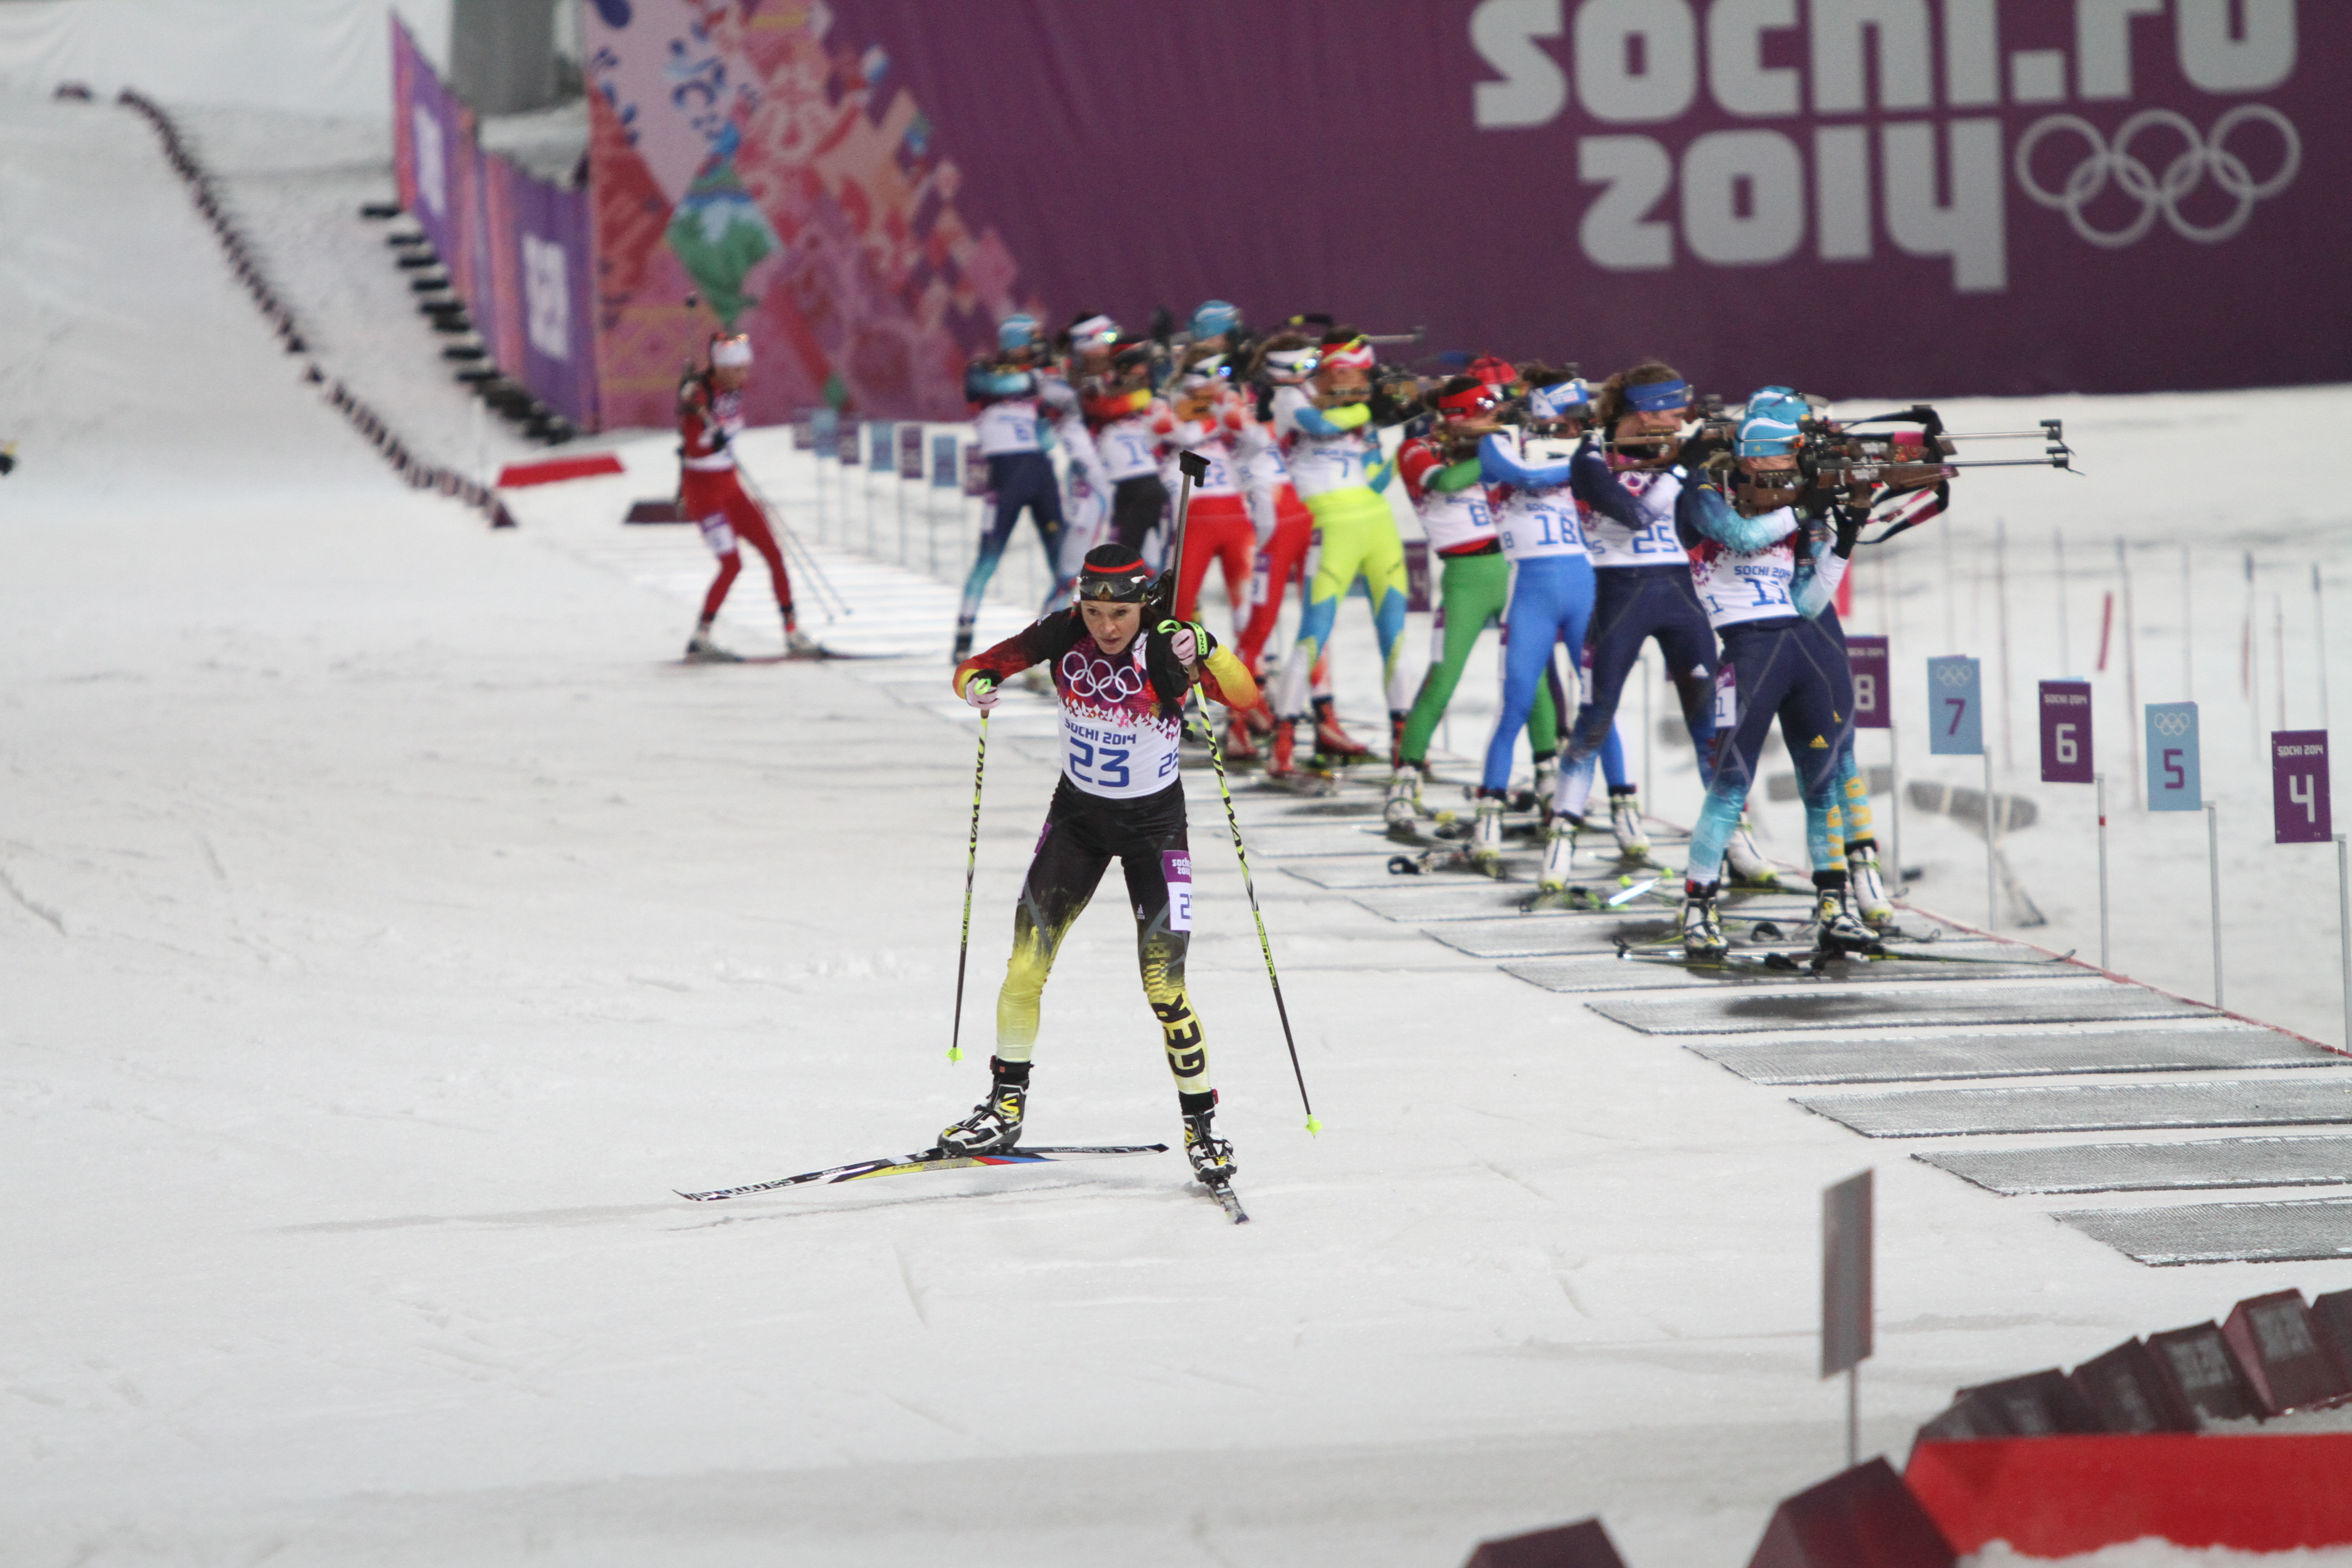 Germany's Evi Sachenbacher-Stehle leaving the selection for the duration of the 2014 Olympic mass commence race. She positioned fourth, but was later on disqualified following testing positive for a banned stimulant.